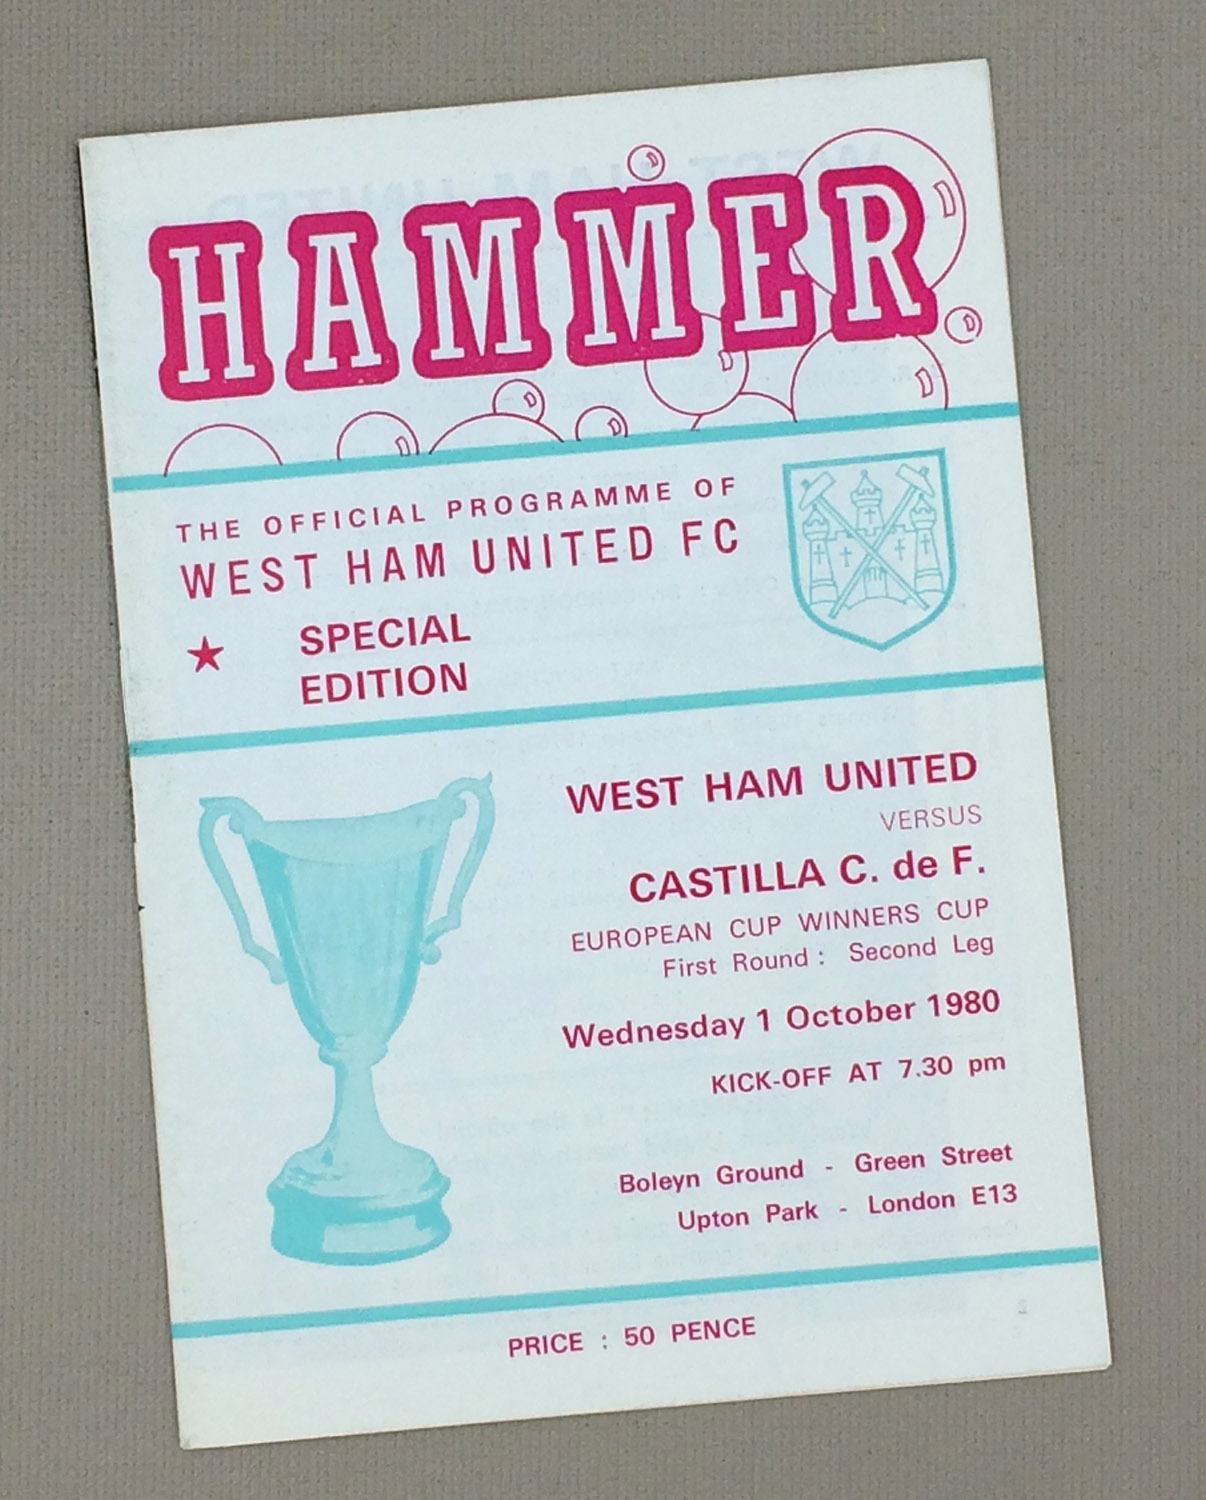 West Ham United vs Castilla C. de F. 1980 Program